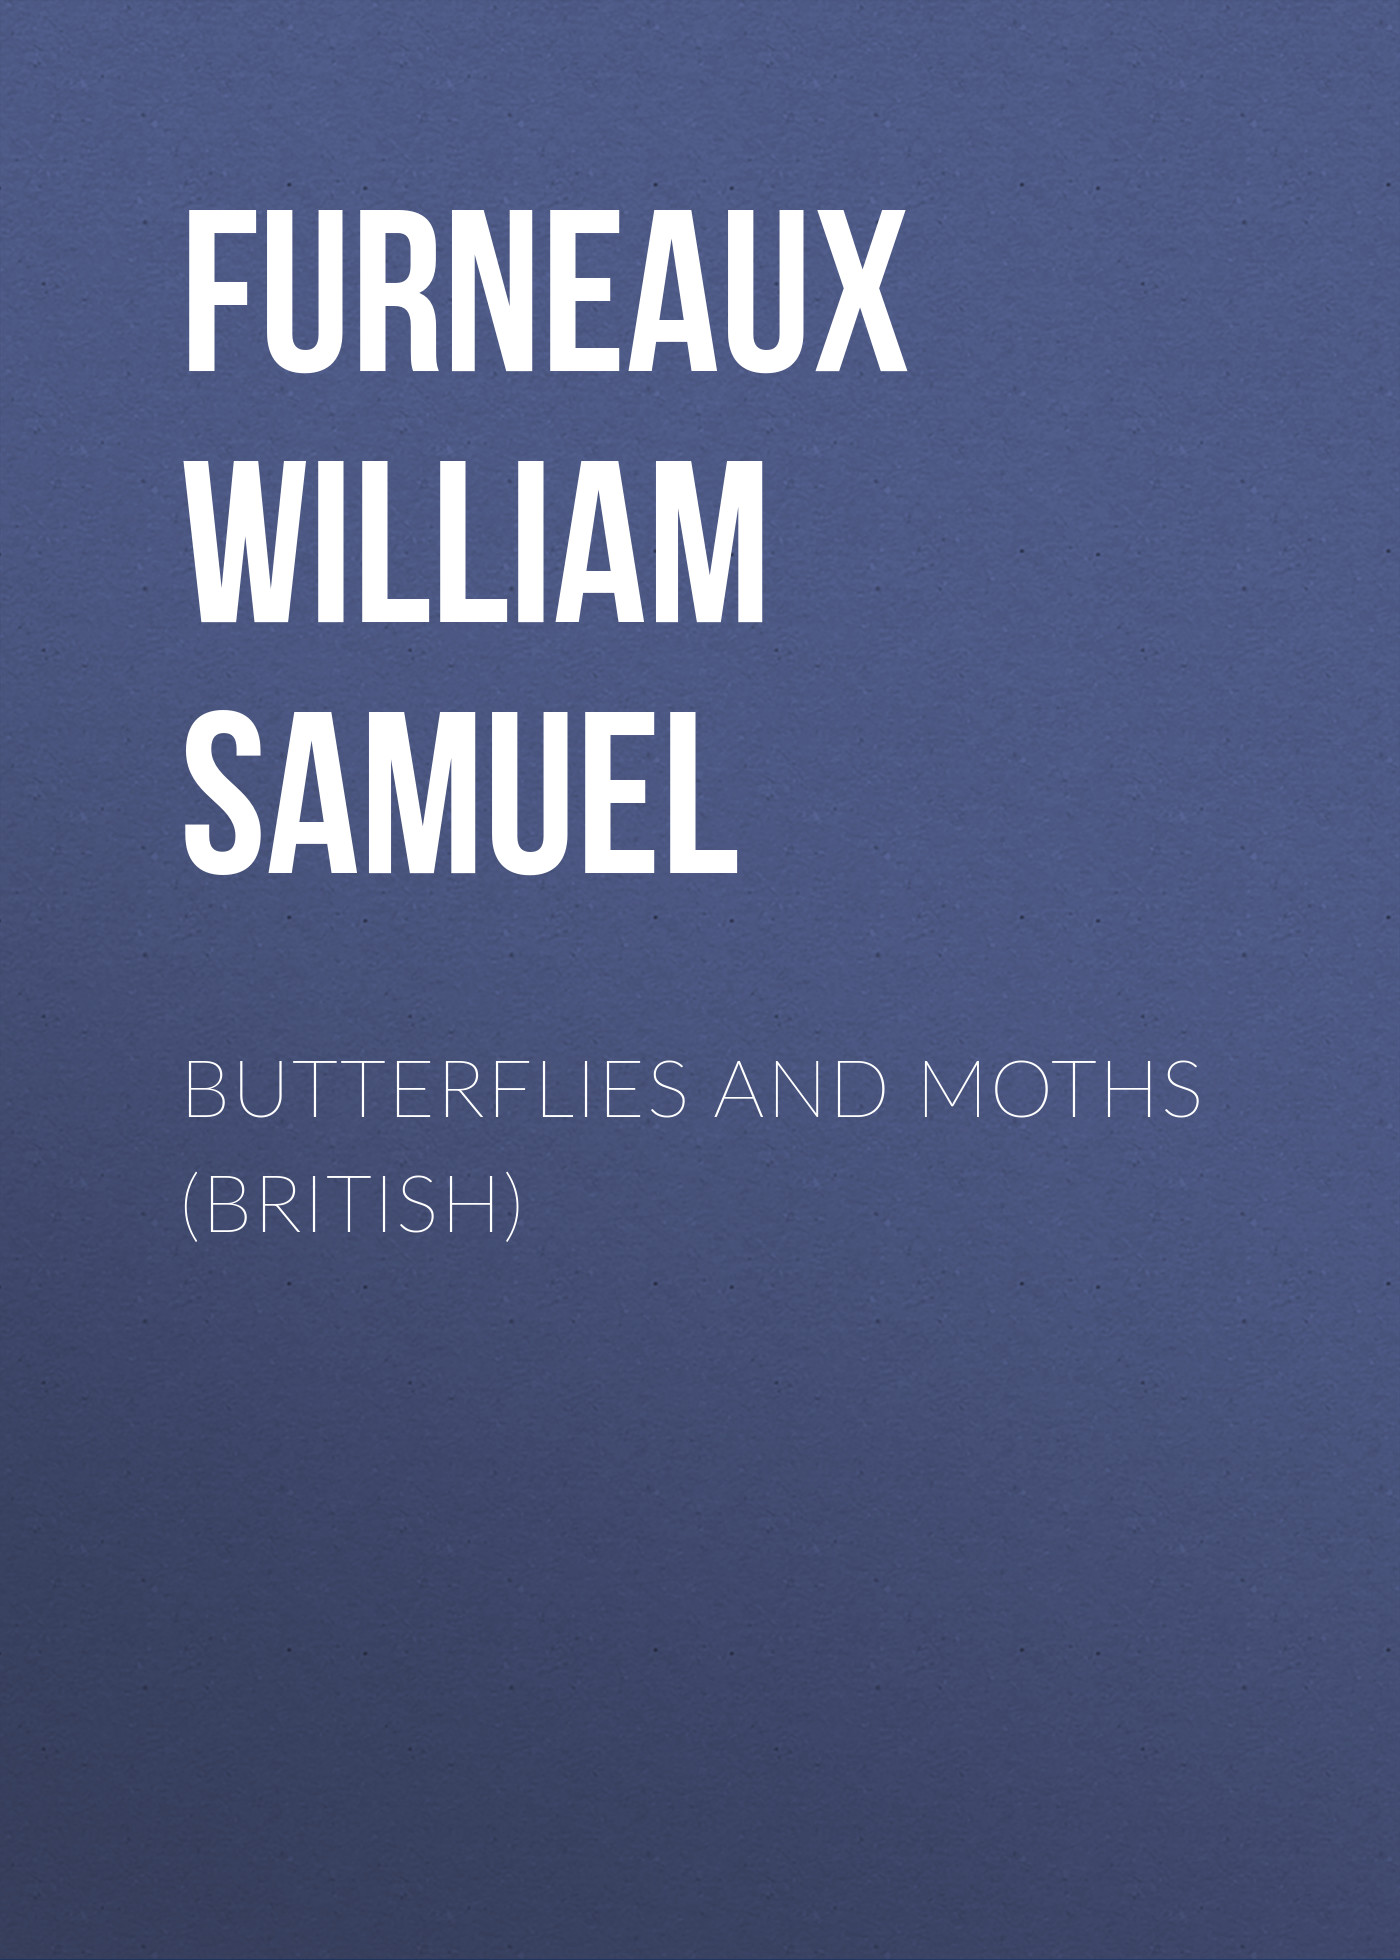 Furneaux William Samuel Butterflies and Moths (British) butterflies and moths